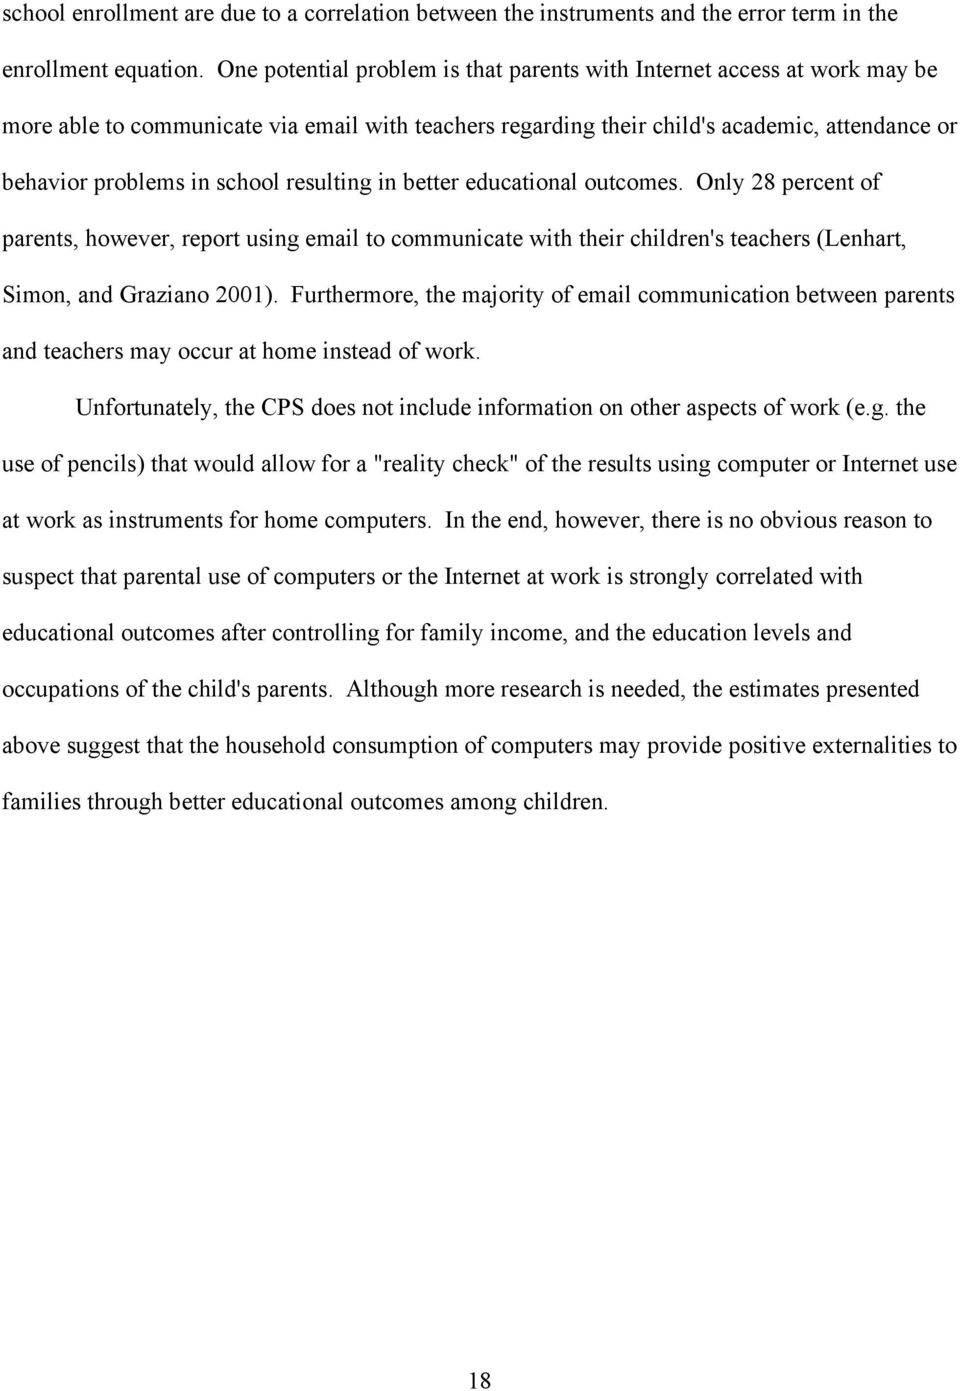 resulting in better educational outcomes. Only 28 percent of parents, however, report using email to communicate with their children's teachers (Lenhart, Simon, and Graziano 2001).